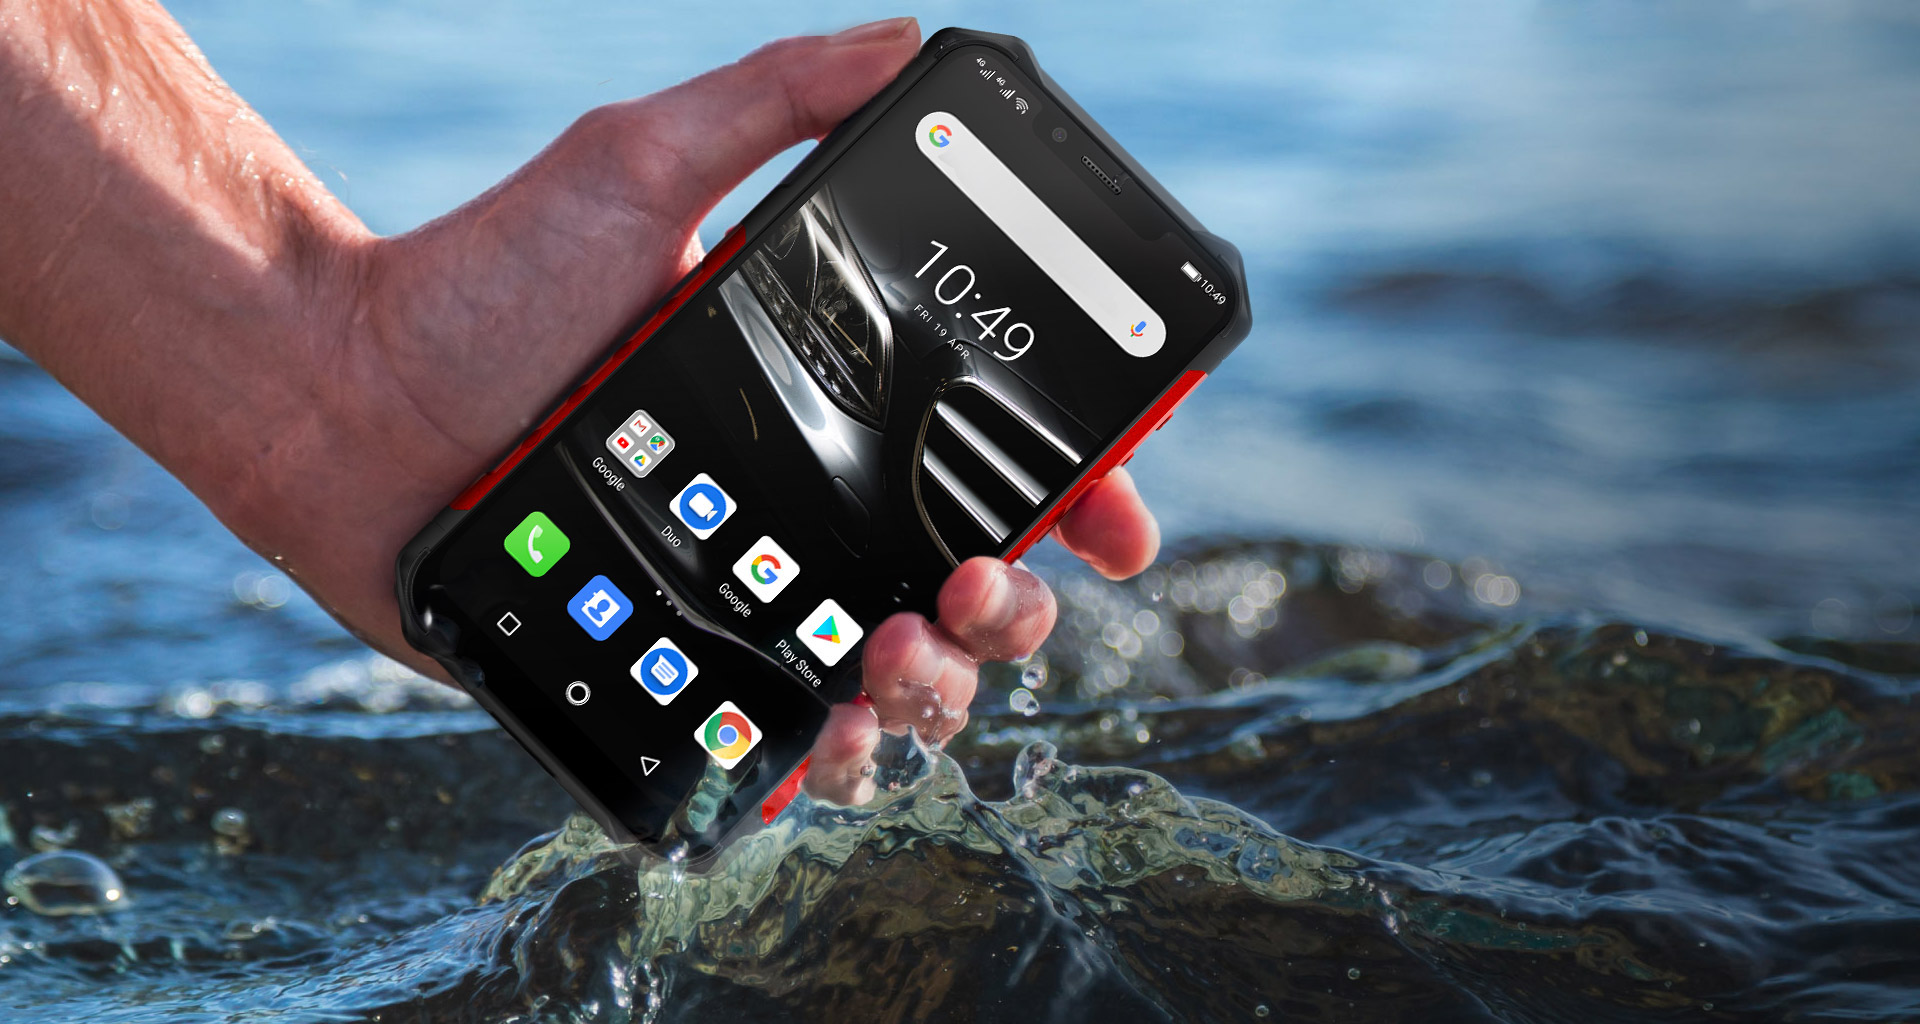 The Ulefone Armor 6E is one of the most durable phones with an underwater camera